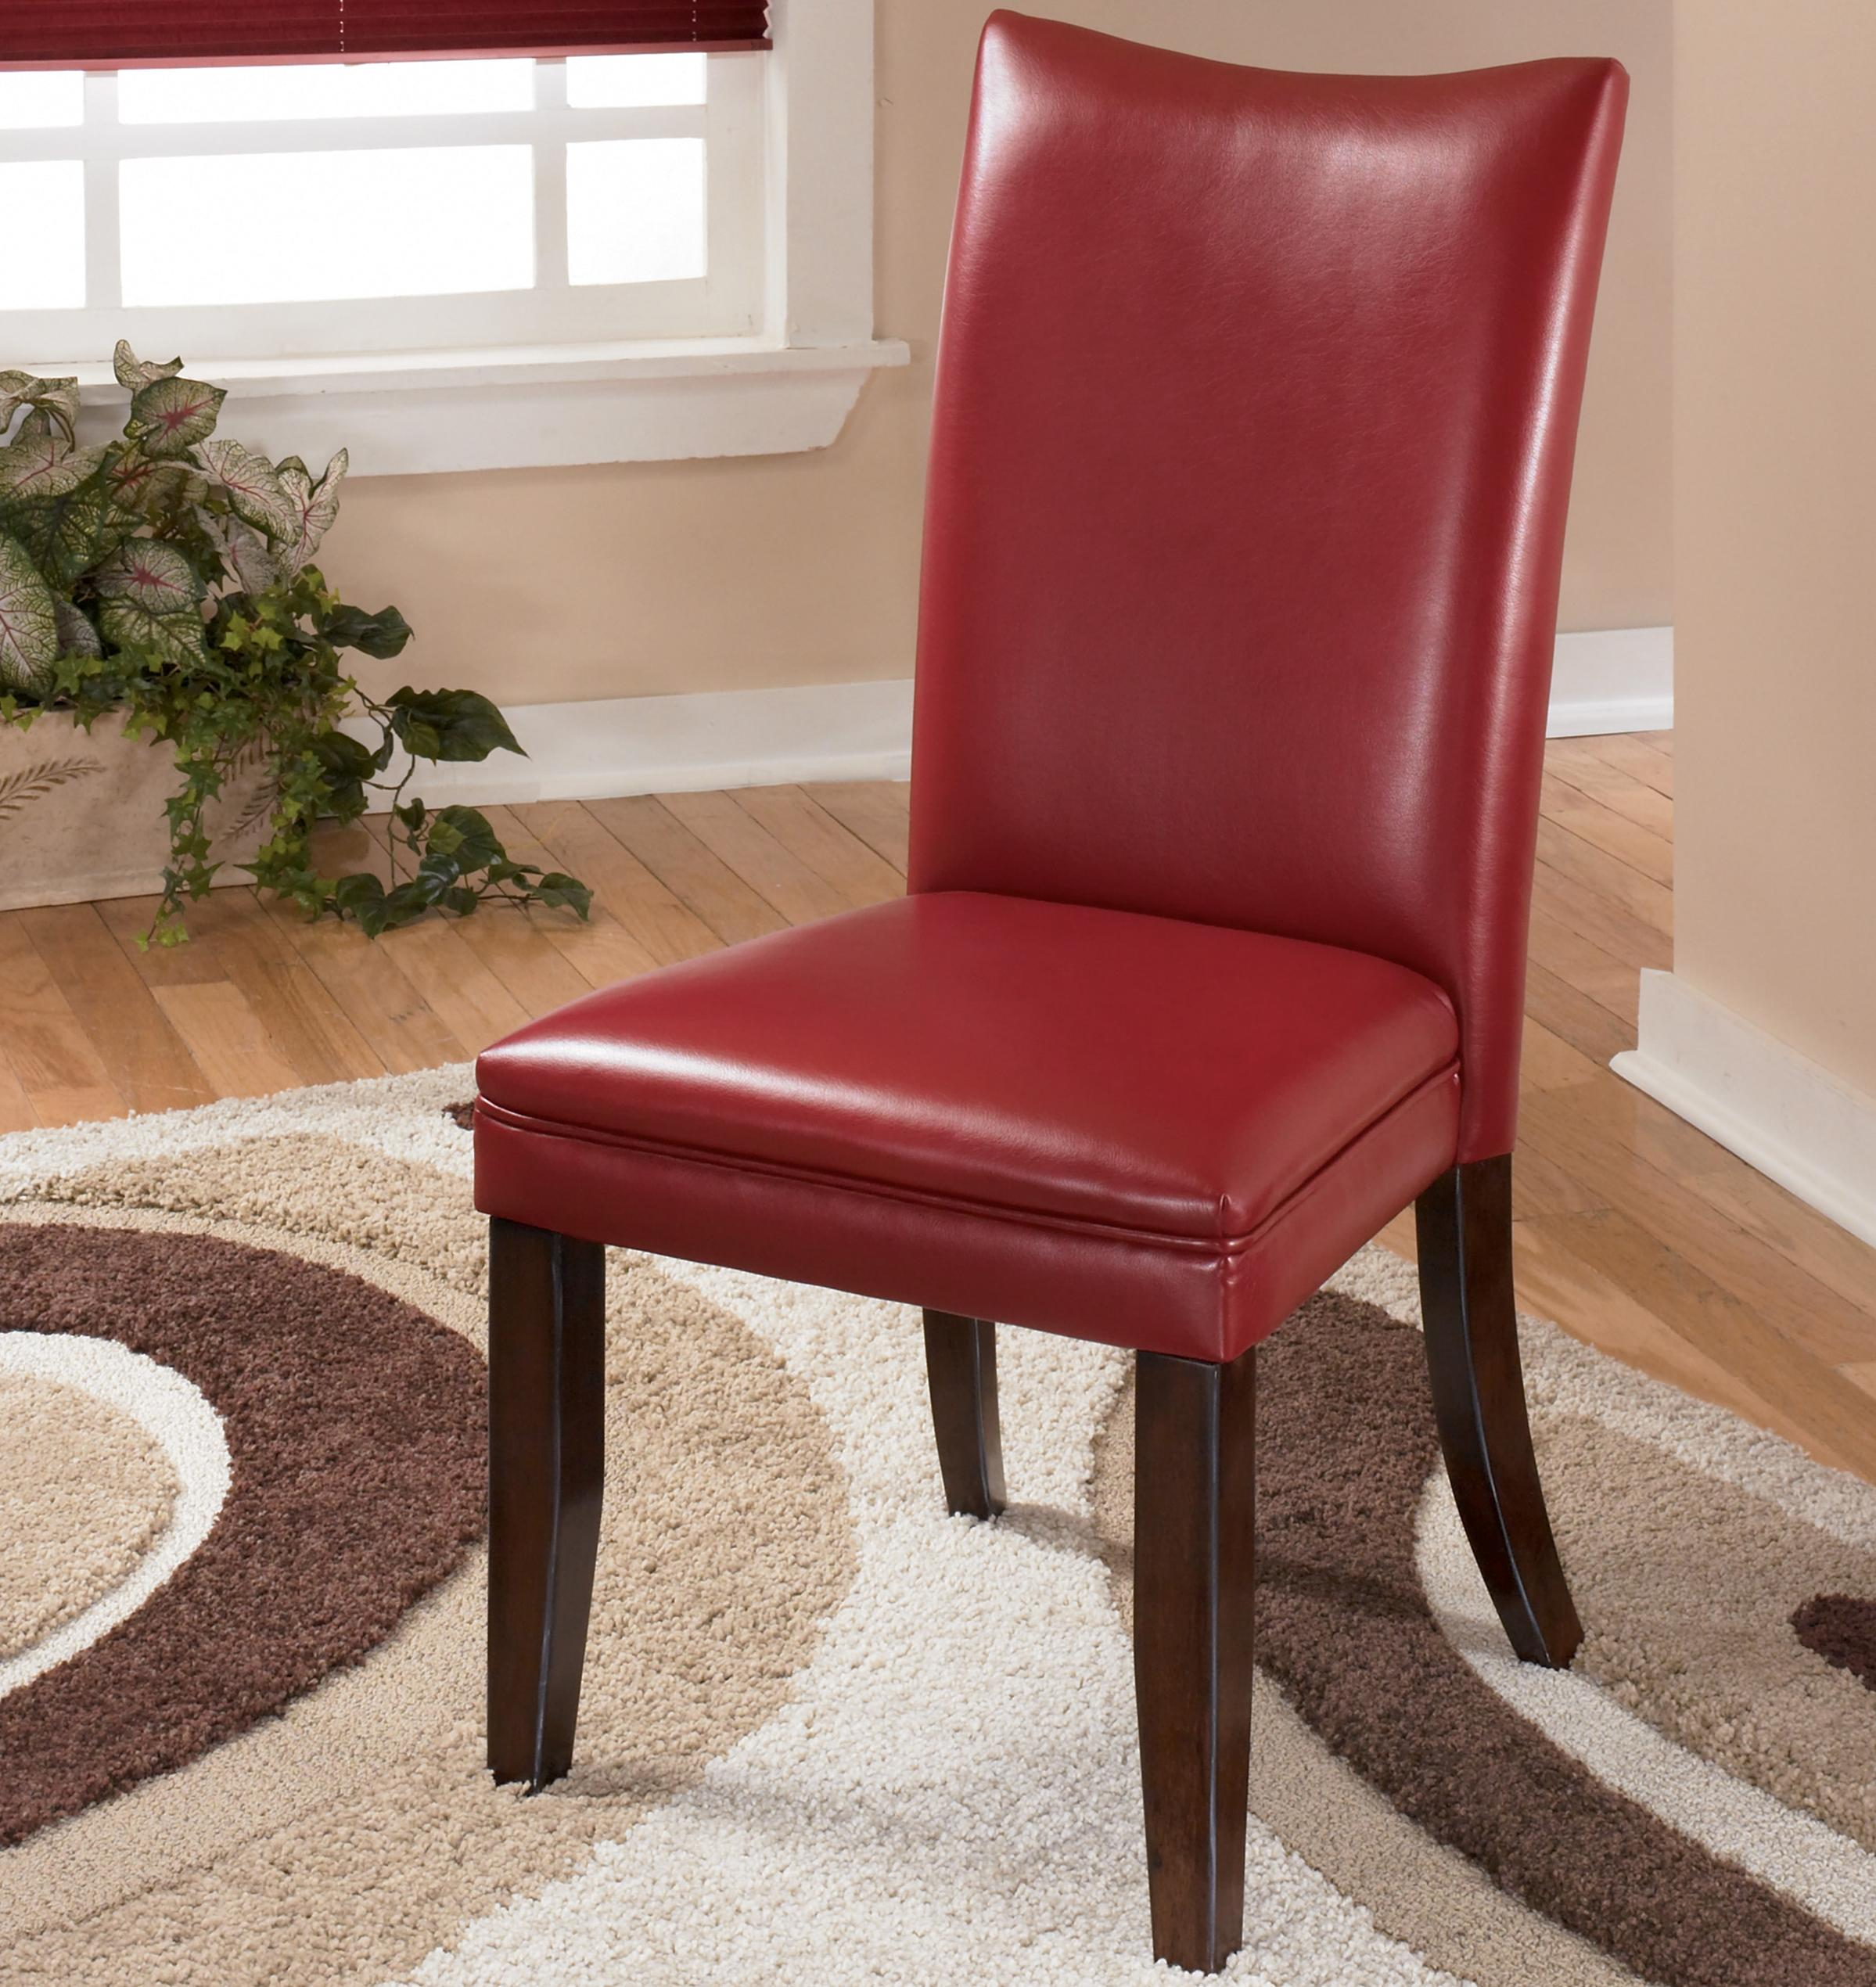 Signature Design by Ashley Charrell Red Upholstered Dining